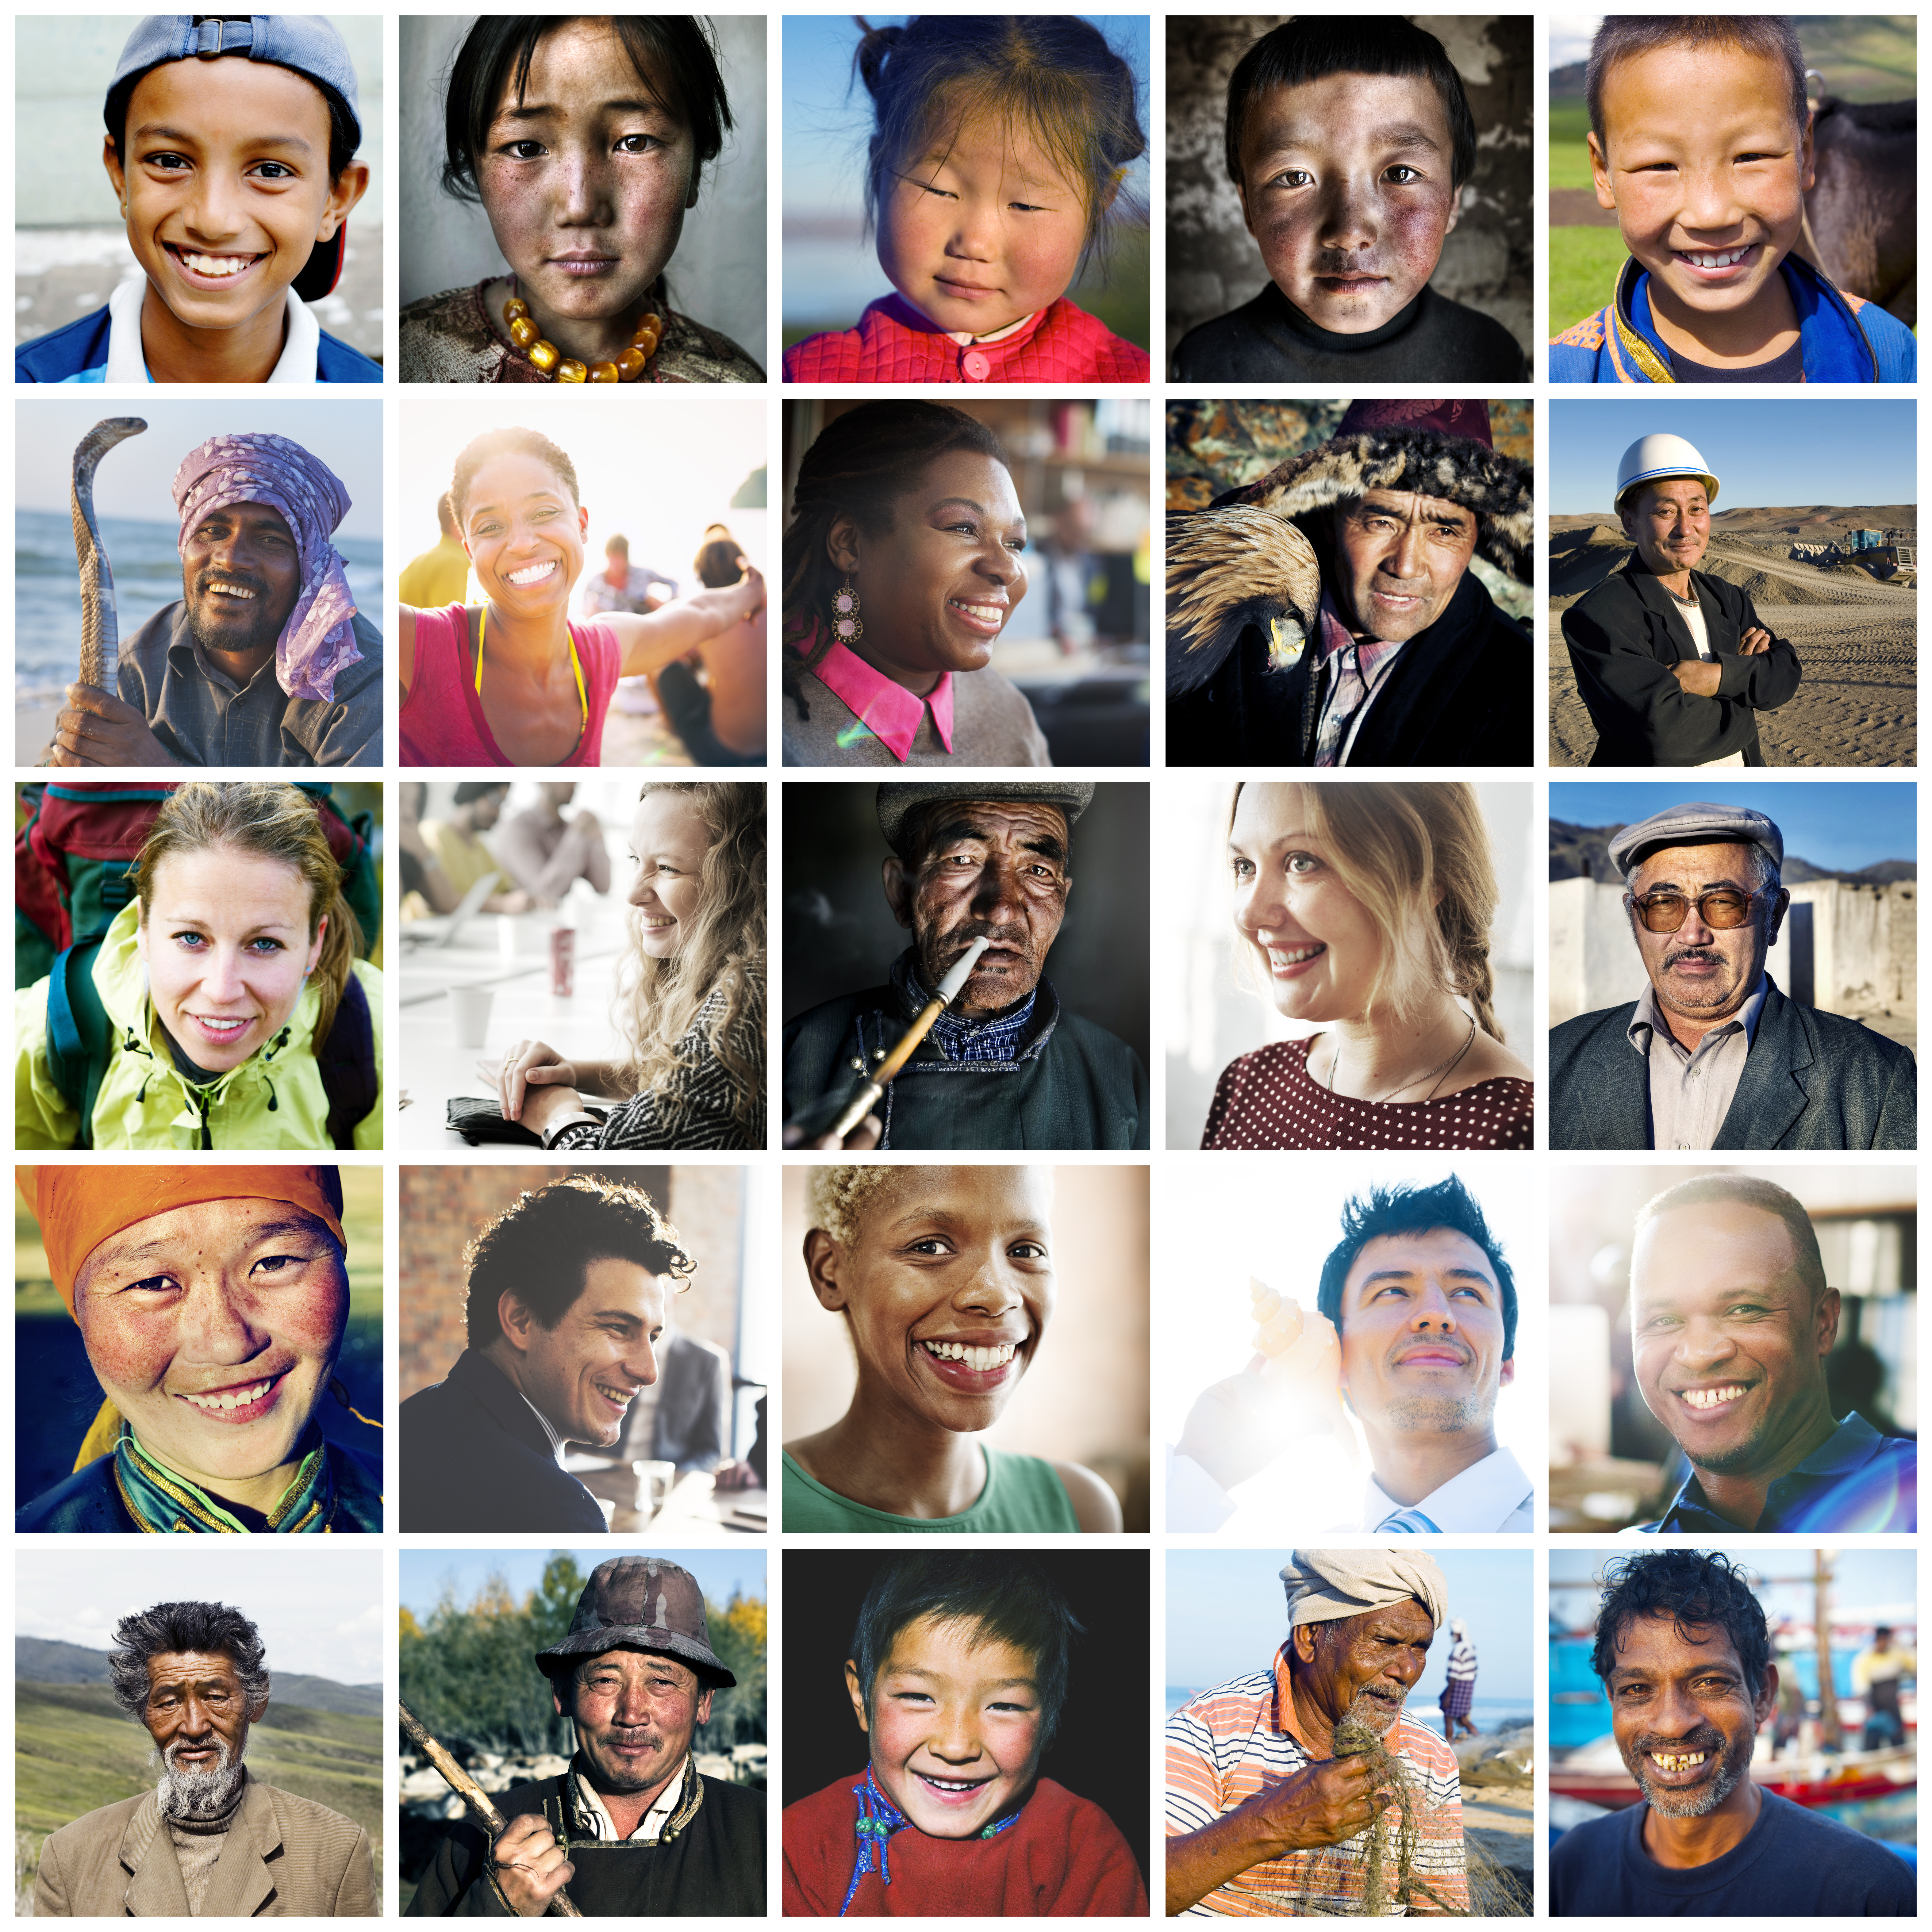 Photo Collage of Diverse People from Around the World